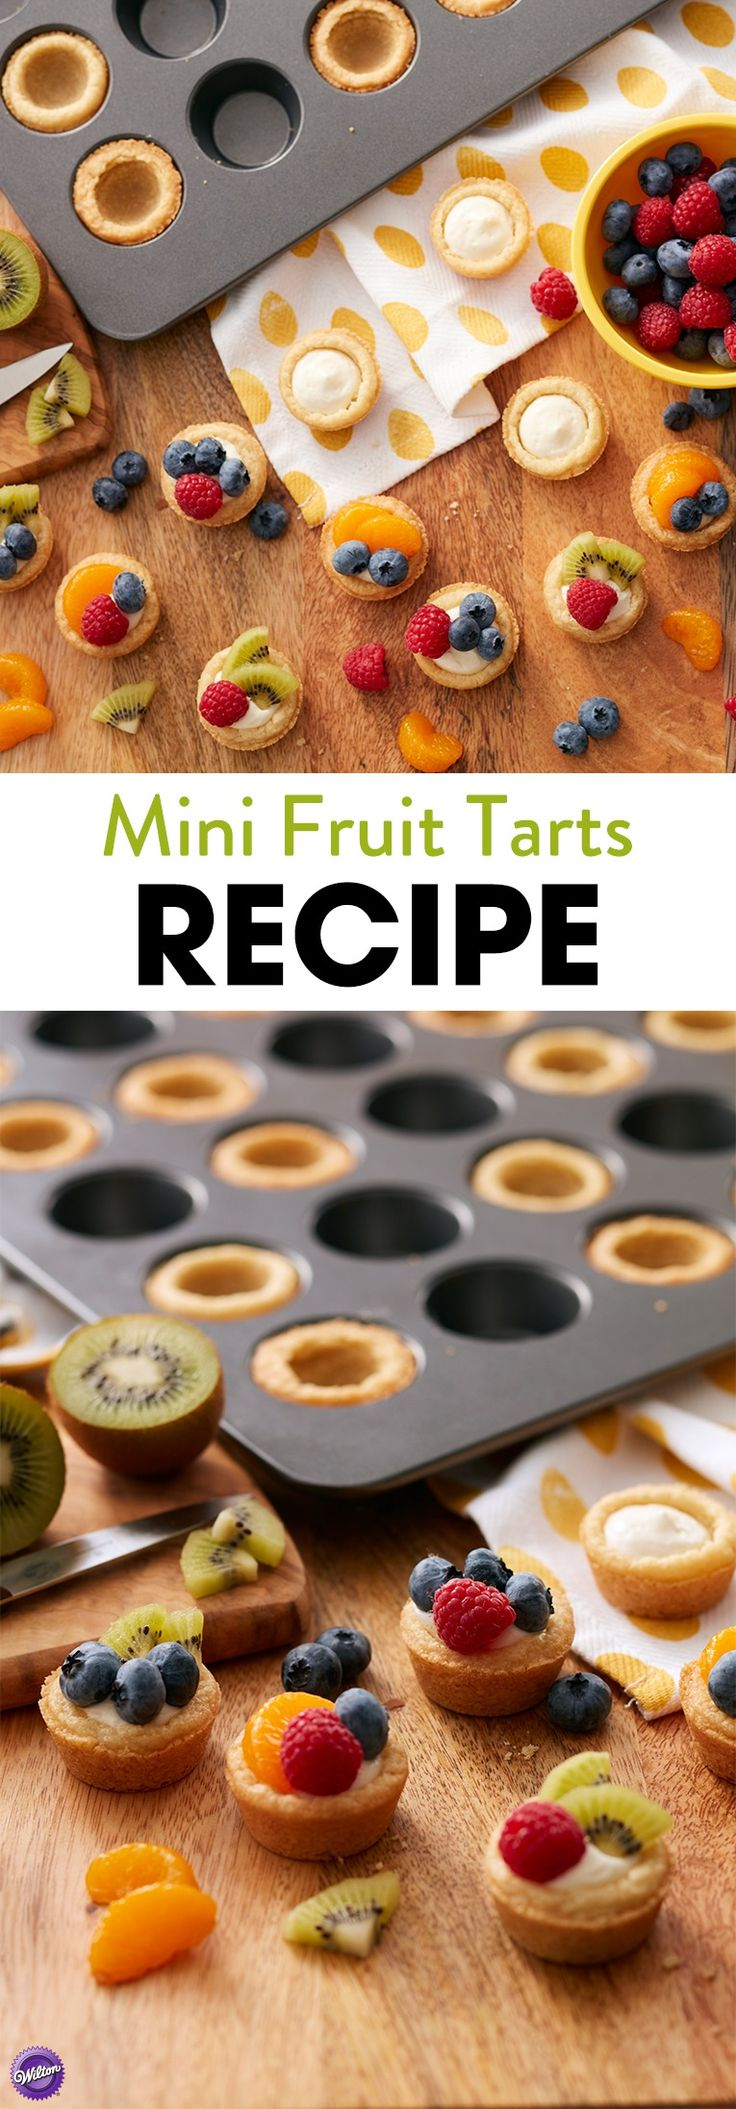 Make these delicious mini fruit tart recipe for mom this Mother's Day! This delicious, easy recipe pairs the pop of fresh, mouthwatering berries inside the yummy crisp sugar cookie dough crust, all al